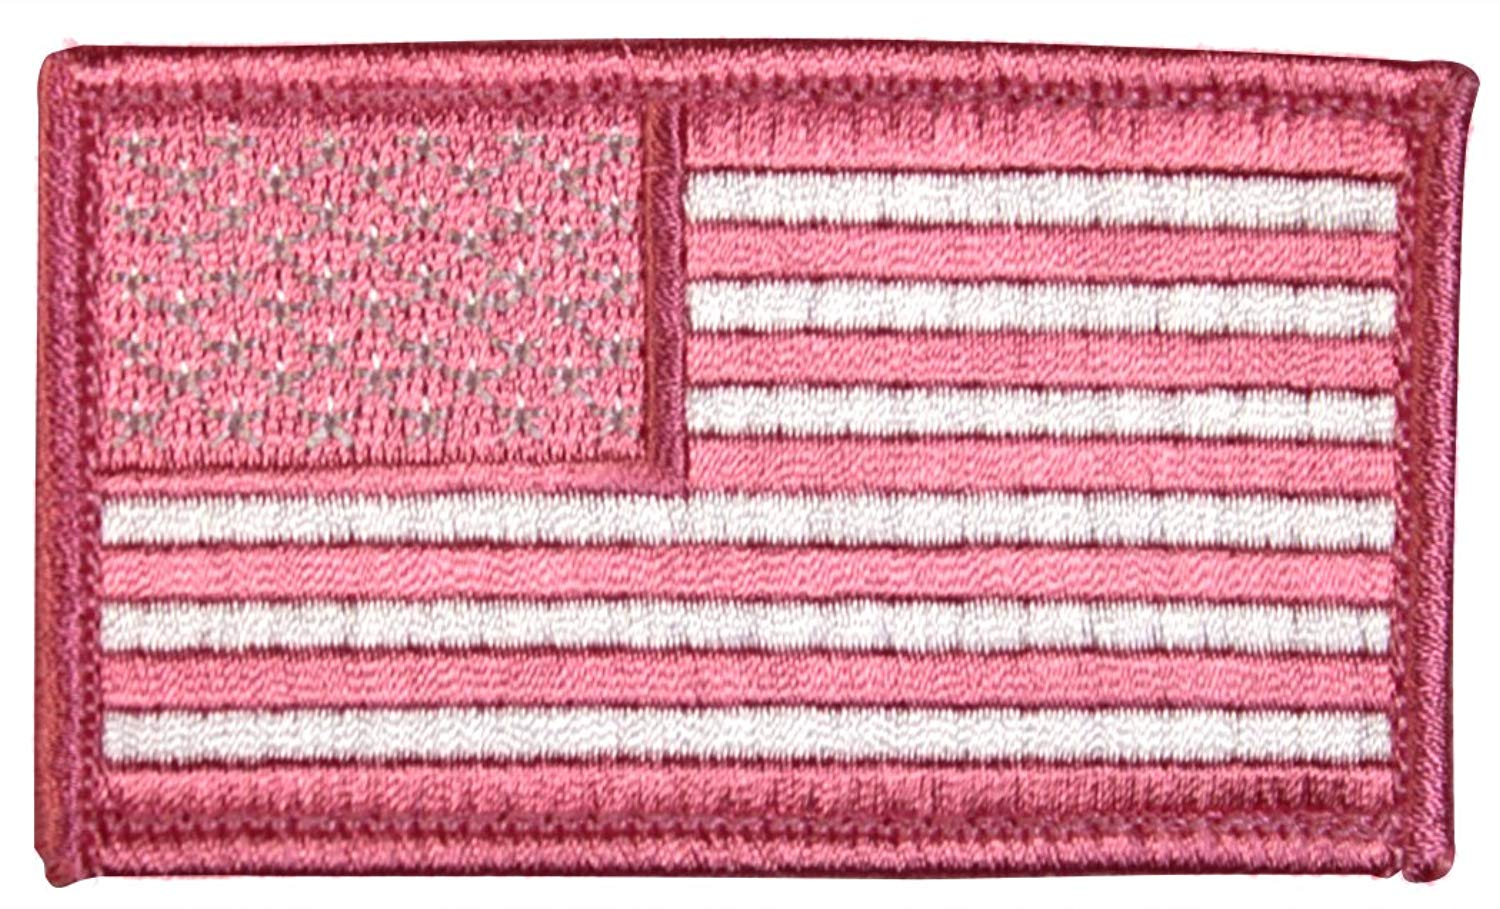 American Flag 2 x 3 Inch Pink Hook and Loop Patch